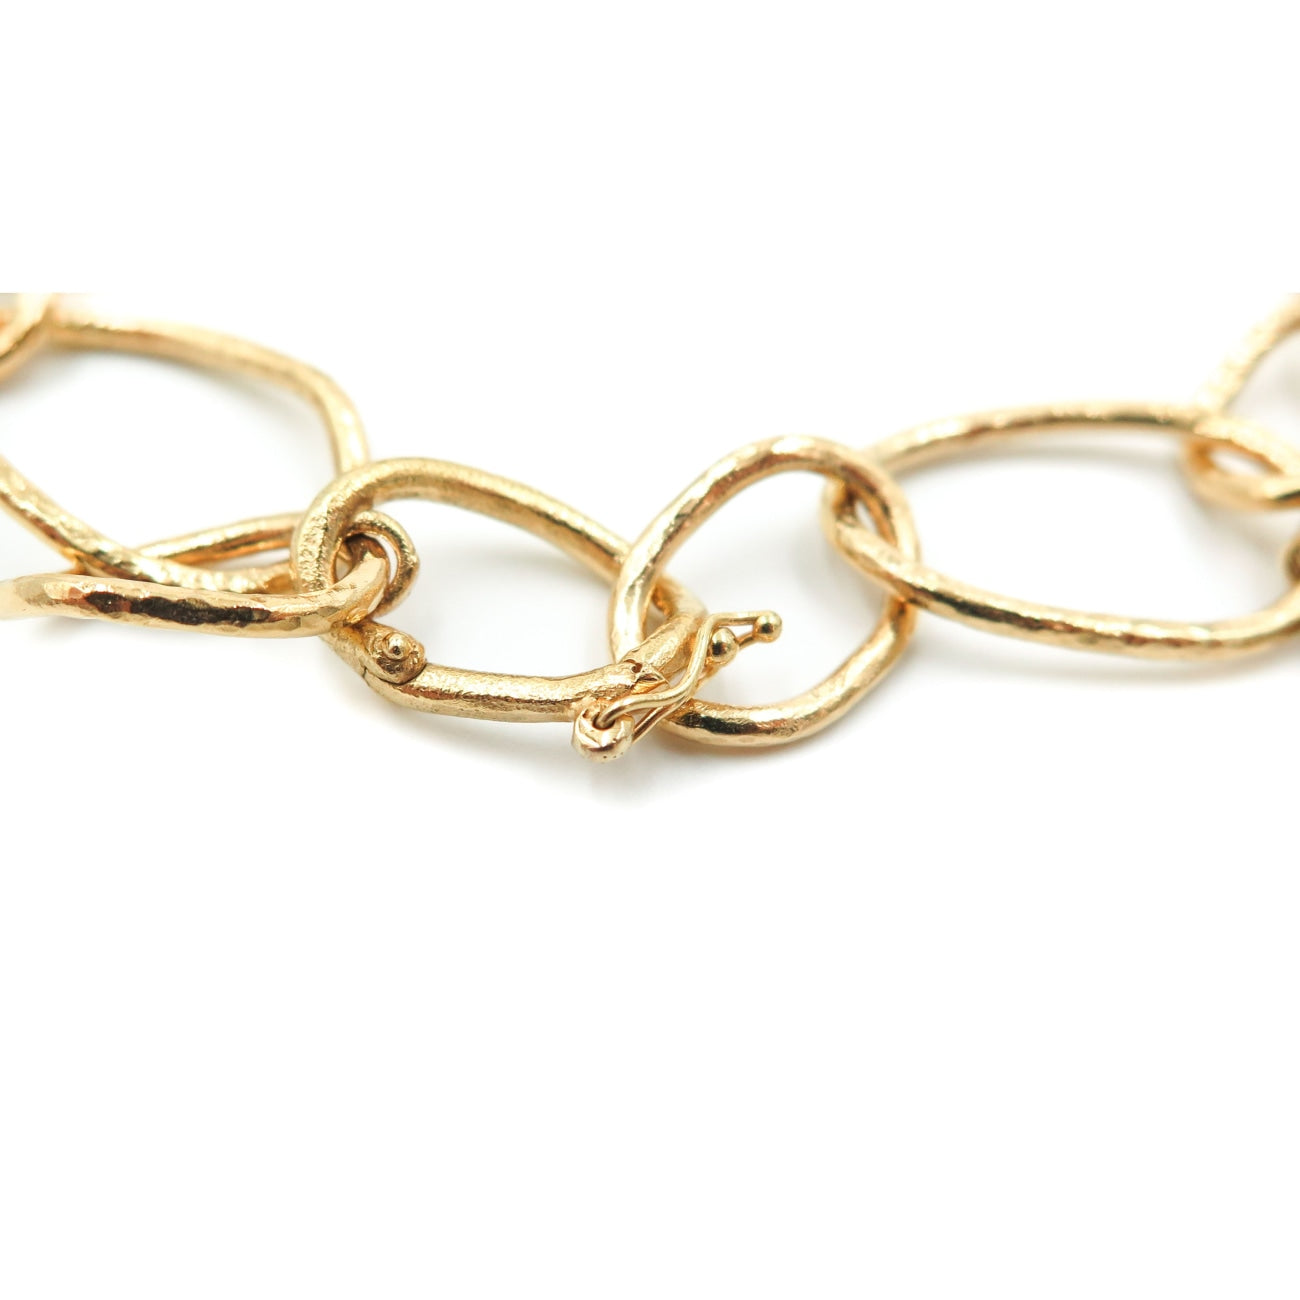 Estate Jewelry Estate Jewelry - Paola Ferro Infinity Yellow Gold Charm Bracelet by Paola Ferro | Manfredi Jewels